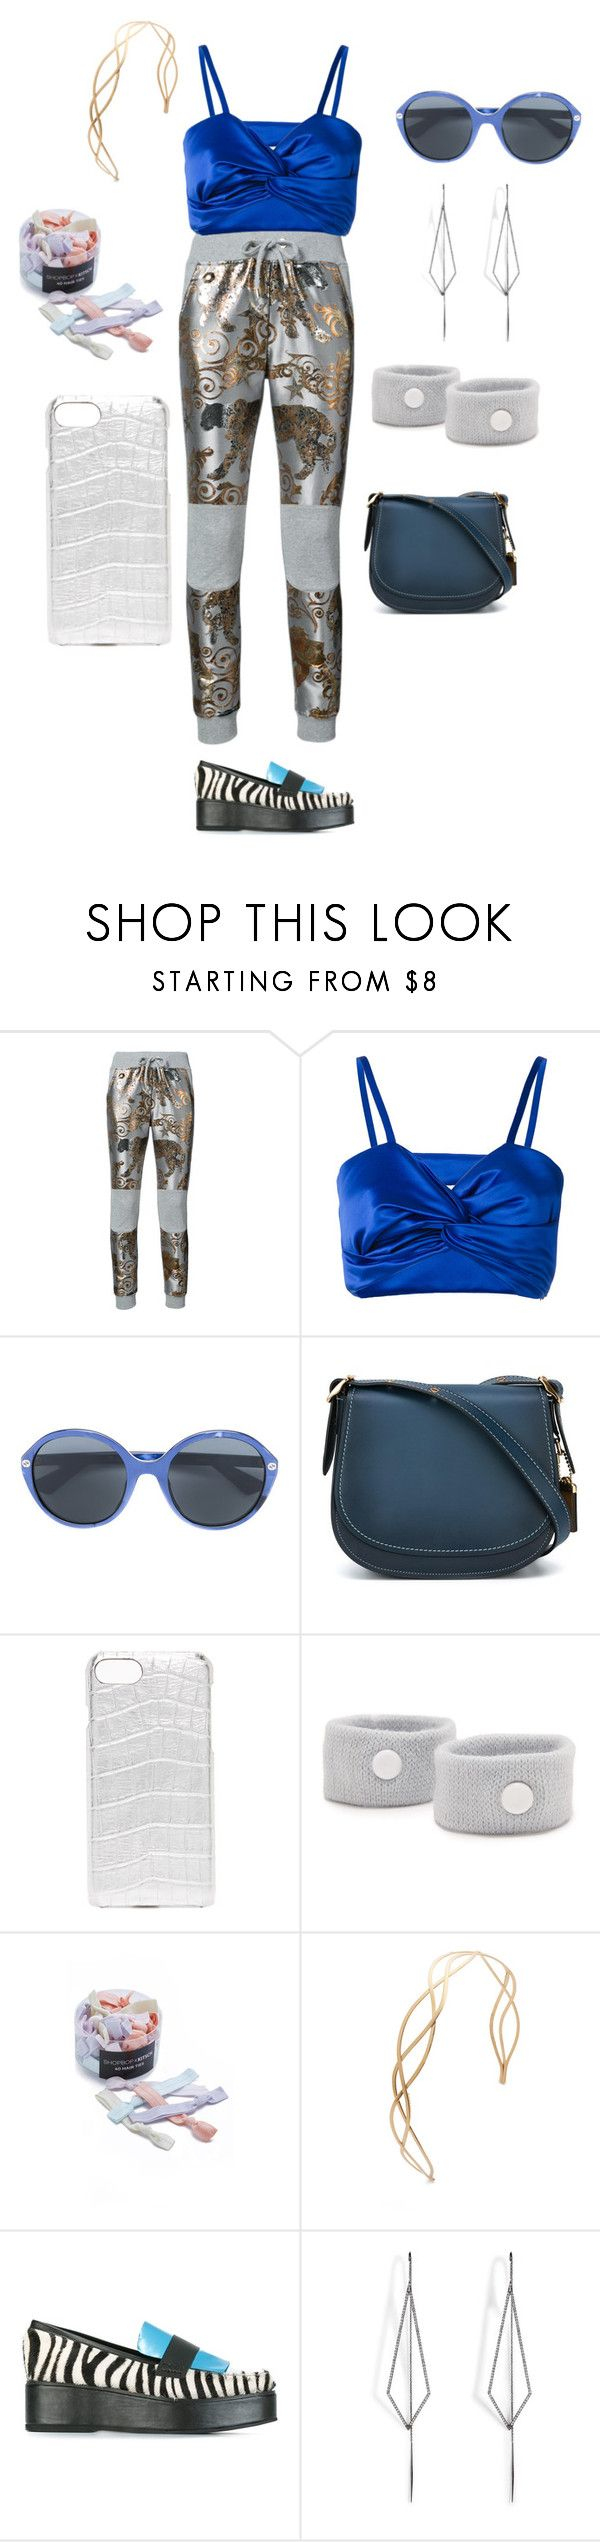 """""""dress like you're already famous"""" by emmamegan-5678 ❤ liked on Polyvore featuring Philipp Plein, Sadie Williams, Gucci, Coach, Valenz Handmade, Flight 001, Kitsch, House of Holland, Diane Kordas and modern"""